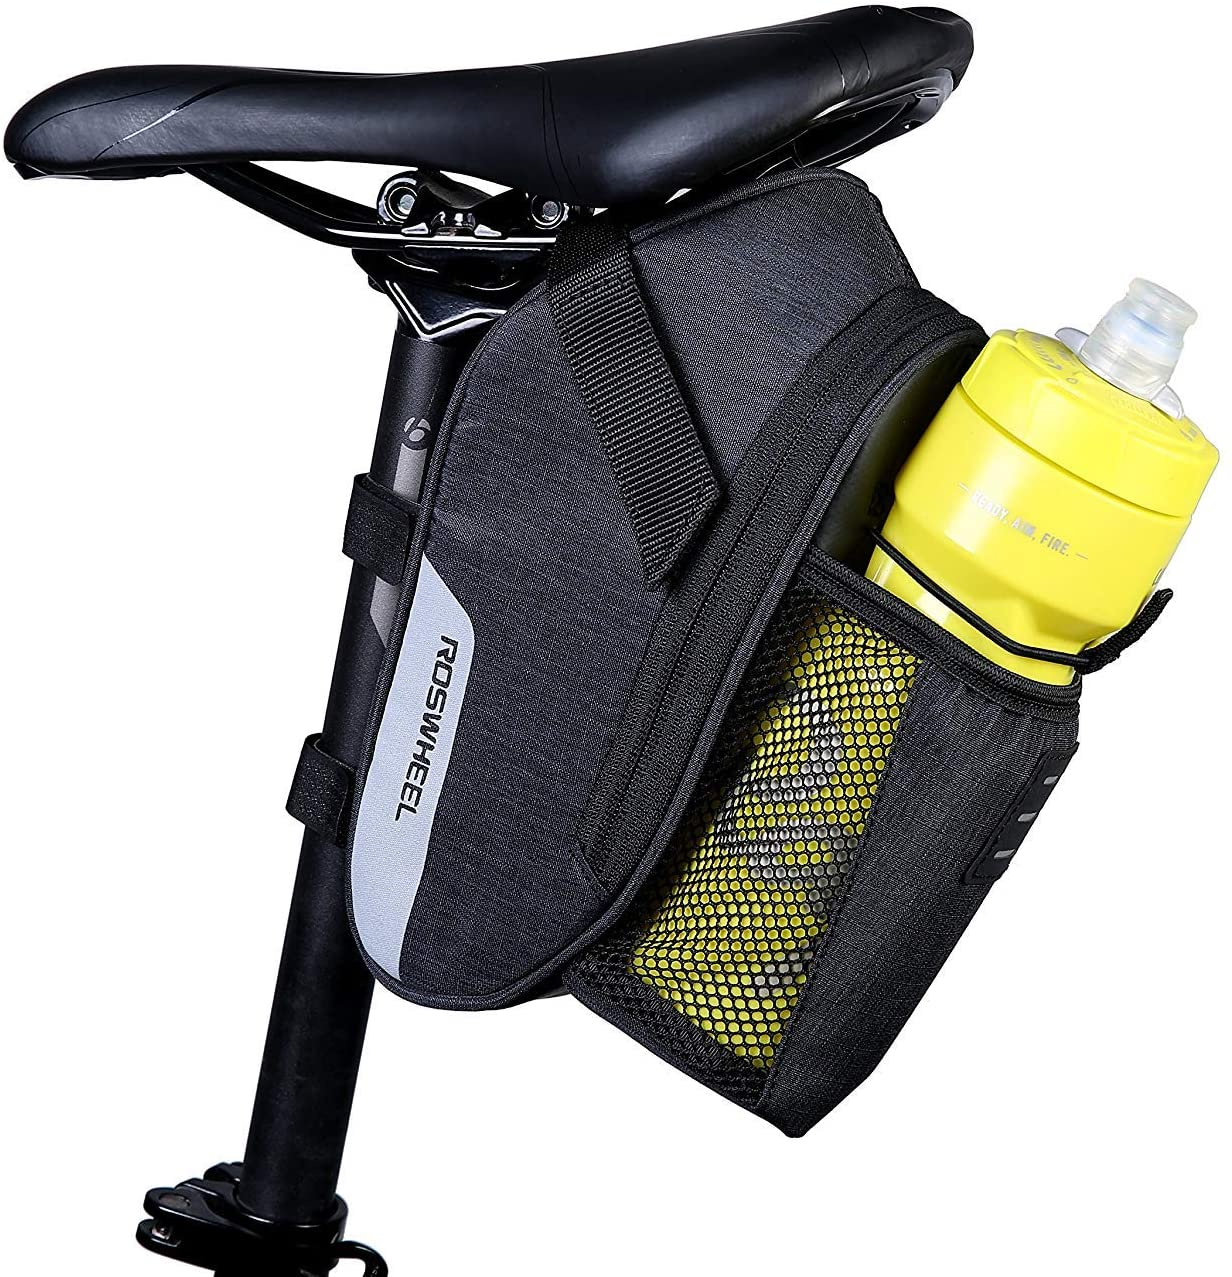 Roswheel Essentials Series 131464 Water Resistant Bike Saddle Bag Bicycle Under Seat Pack Cycling Accessories Pouch with Water Bottle Holder